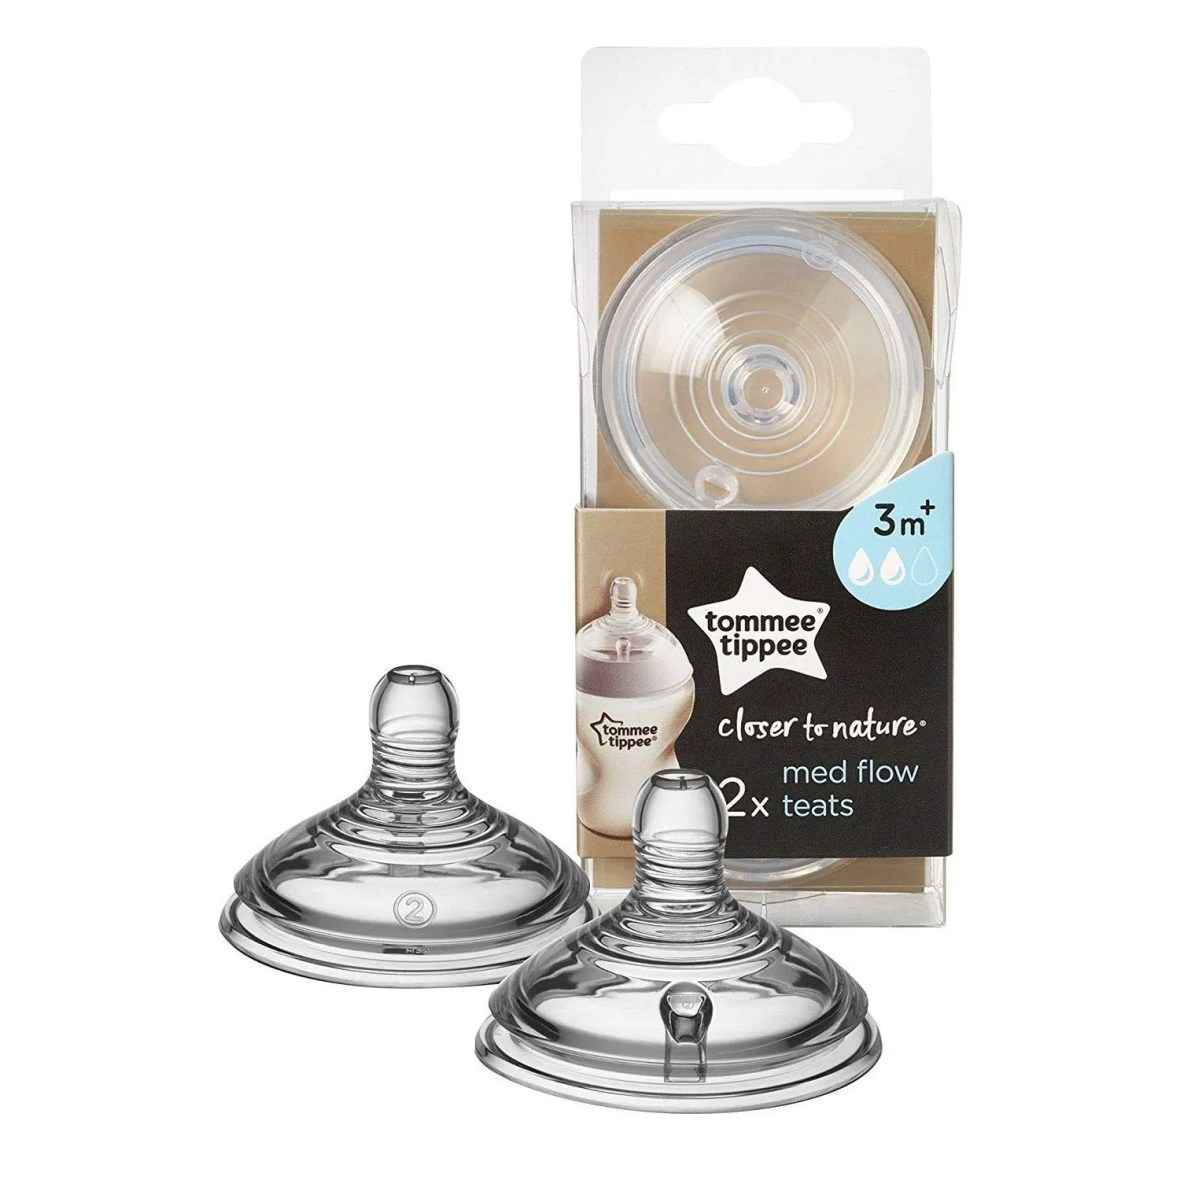 Tommee Tippee Closer to Nature Baby Bottle Feeding Nipple Replacement Teats, 3M+ Medium